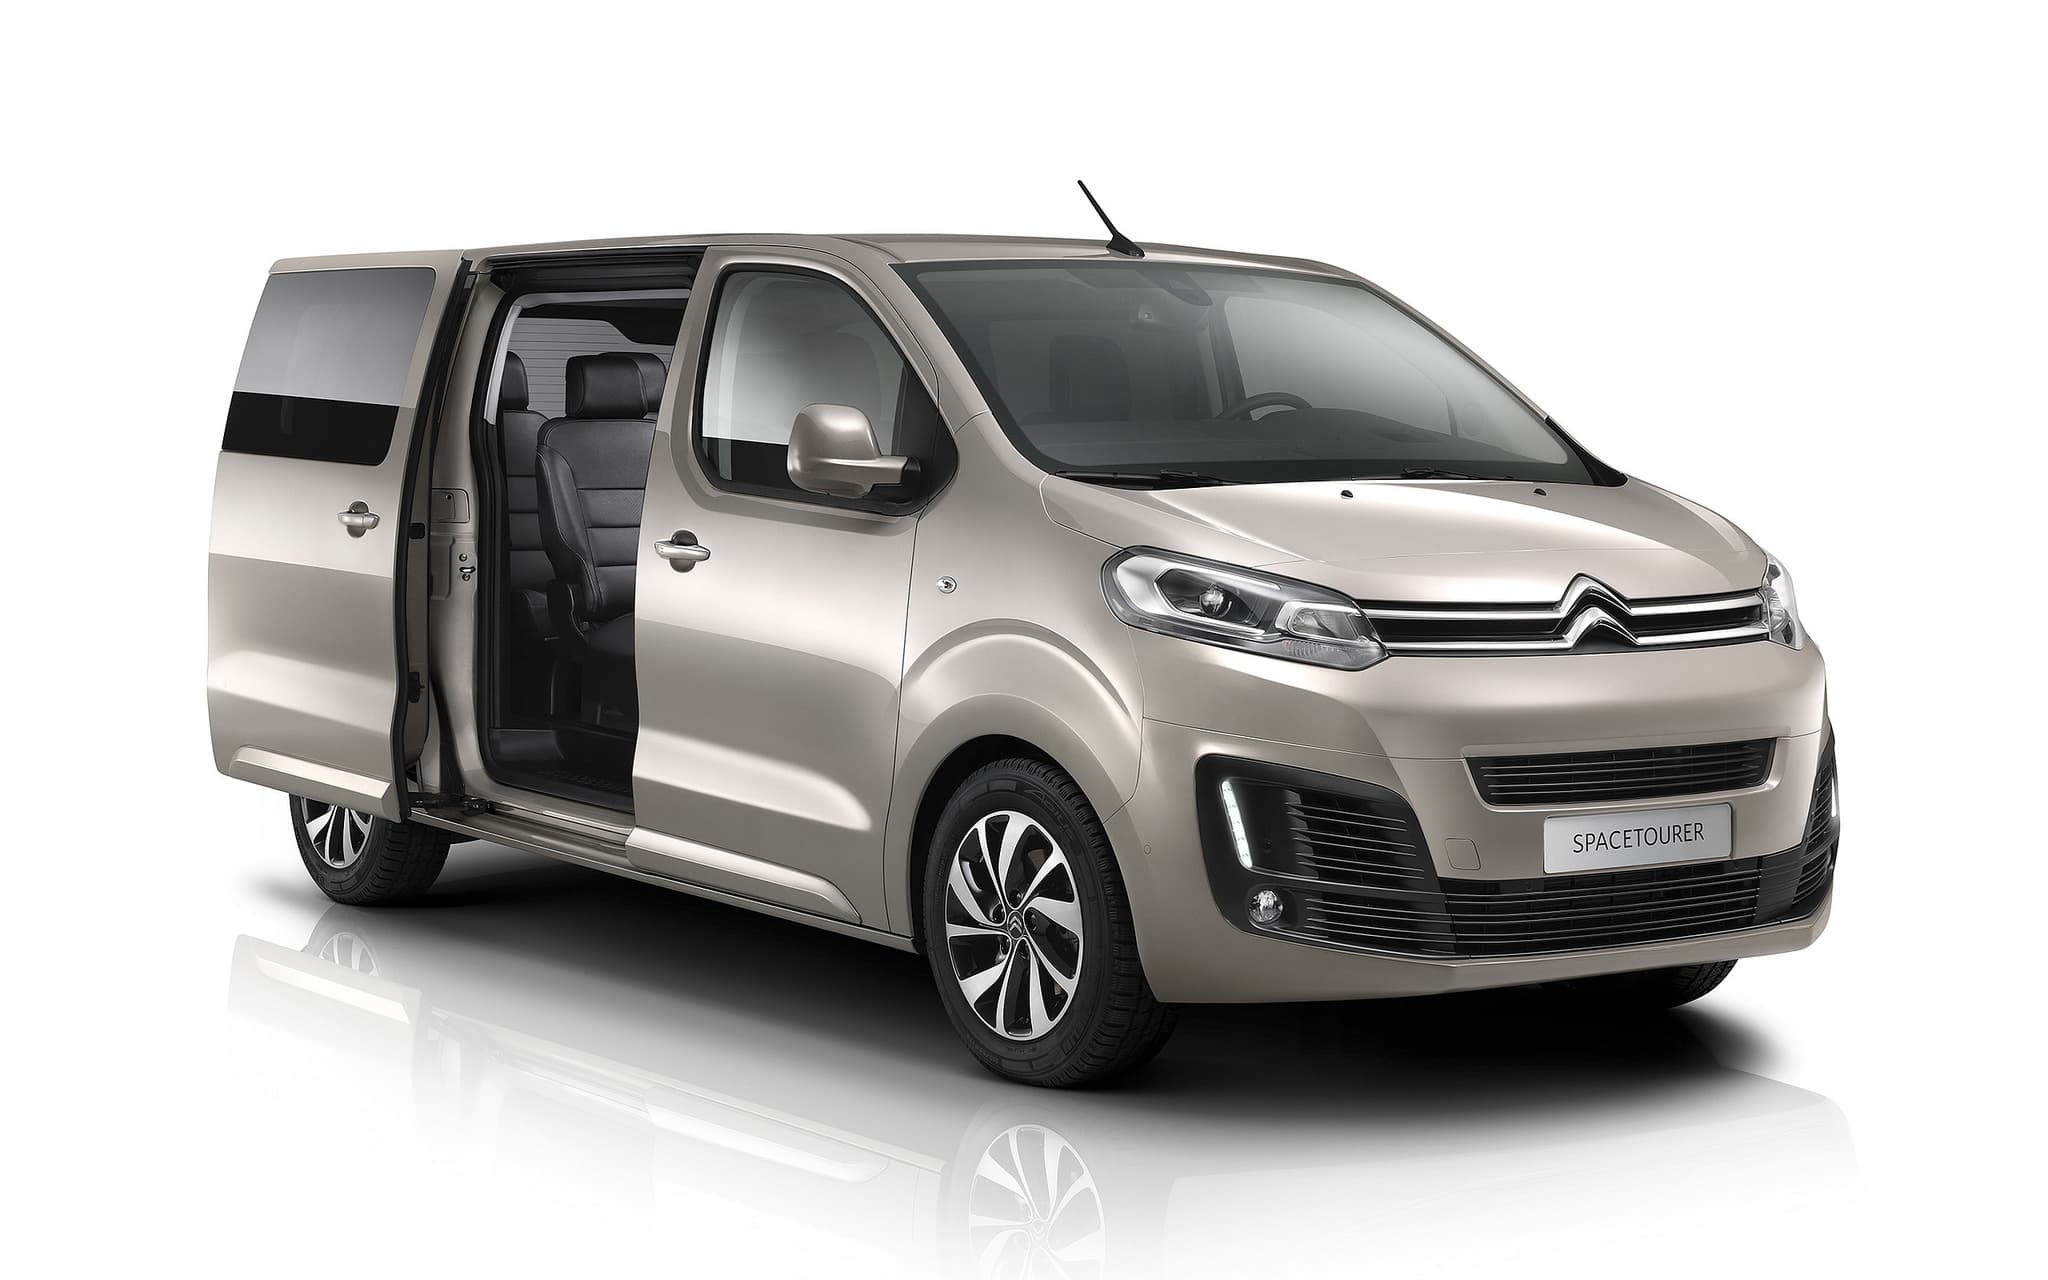 Citroen SpaceTourer 2016 wallpapers